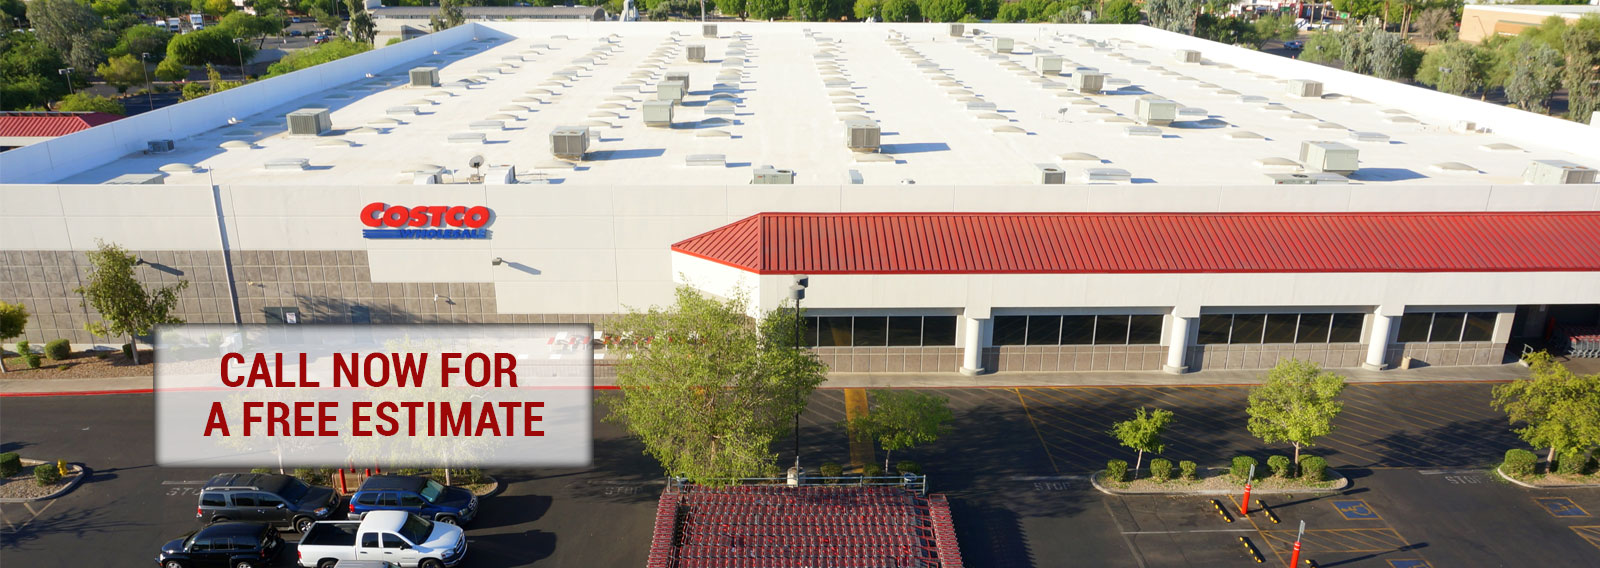 Phoenix Costco Center Foam Roofing